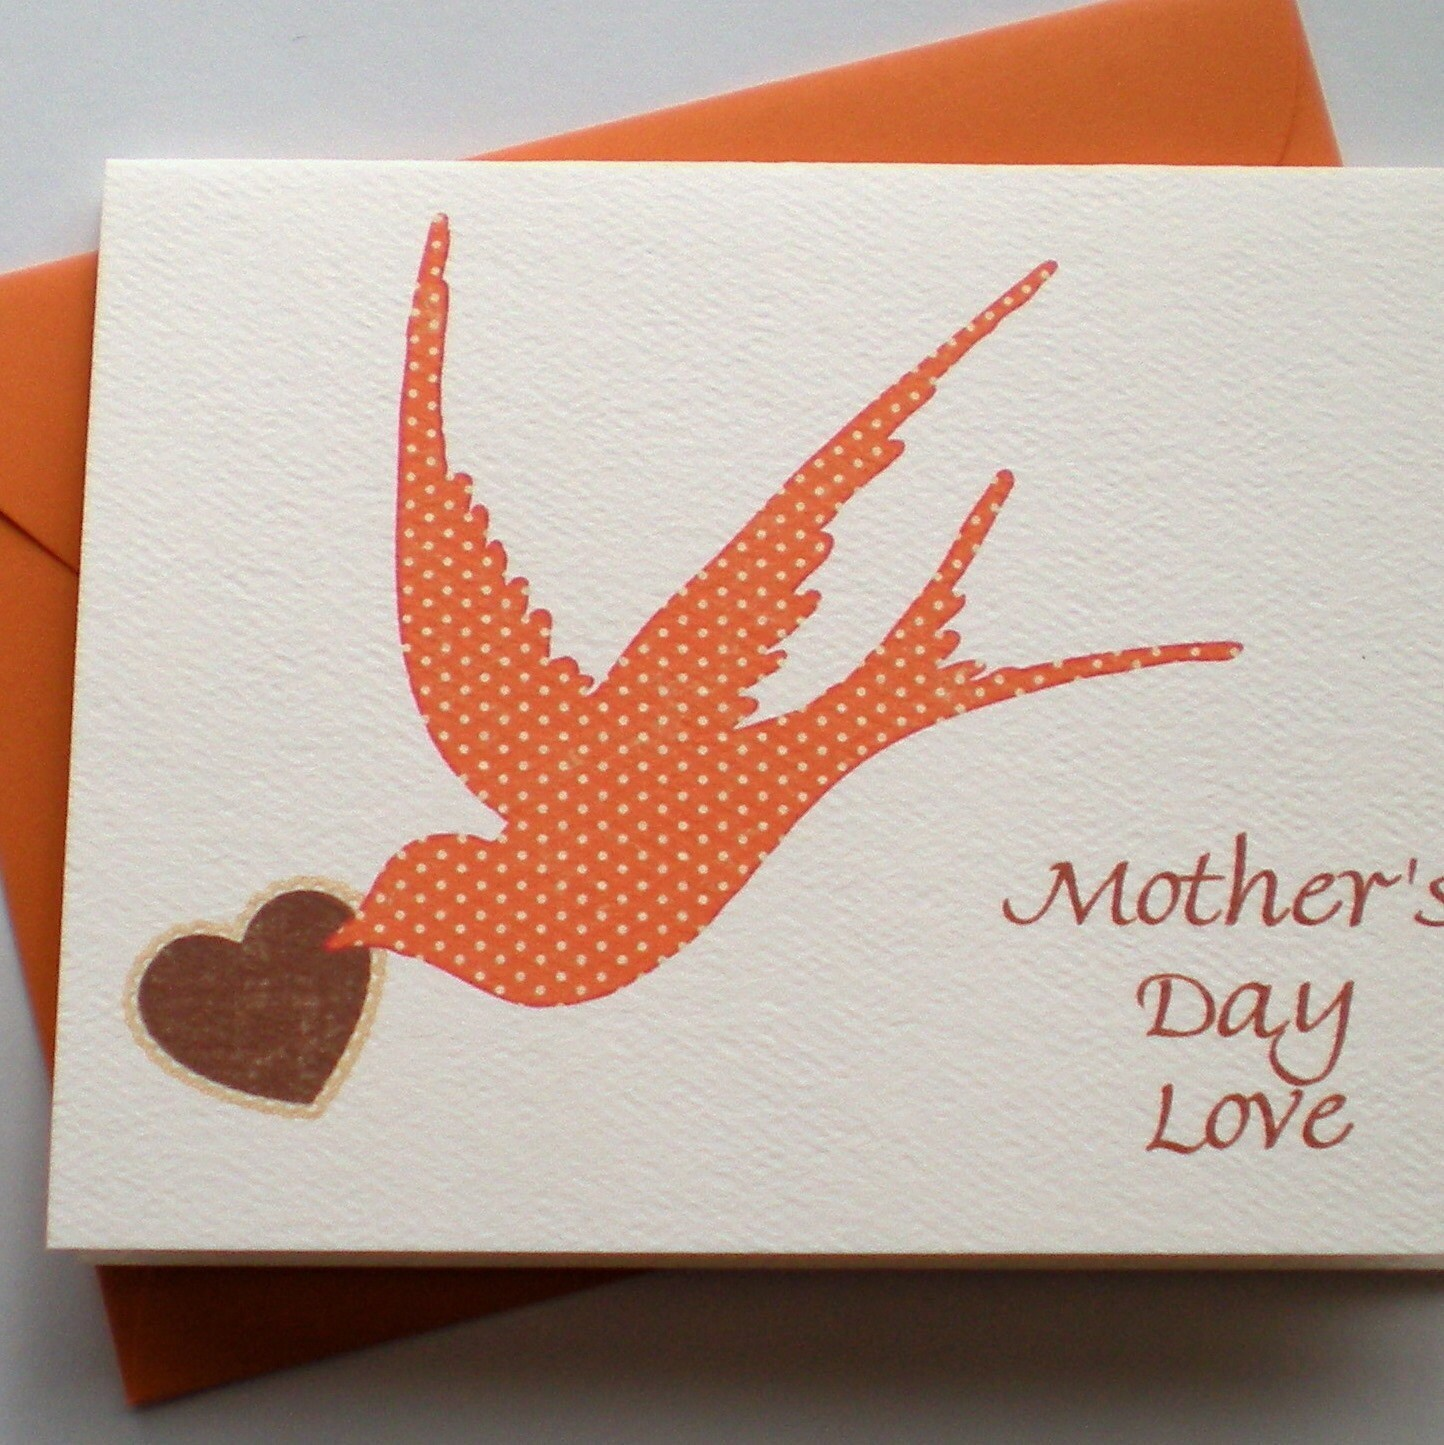 Mothers Day Love Card by Paisley Greetings